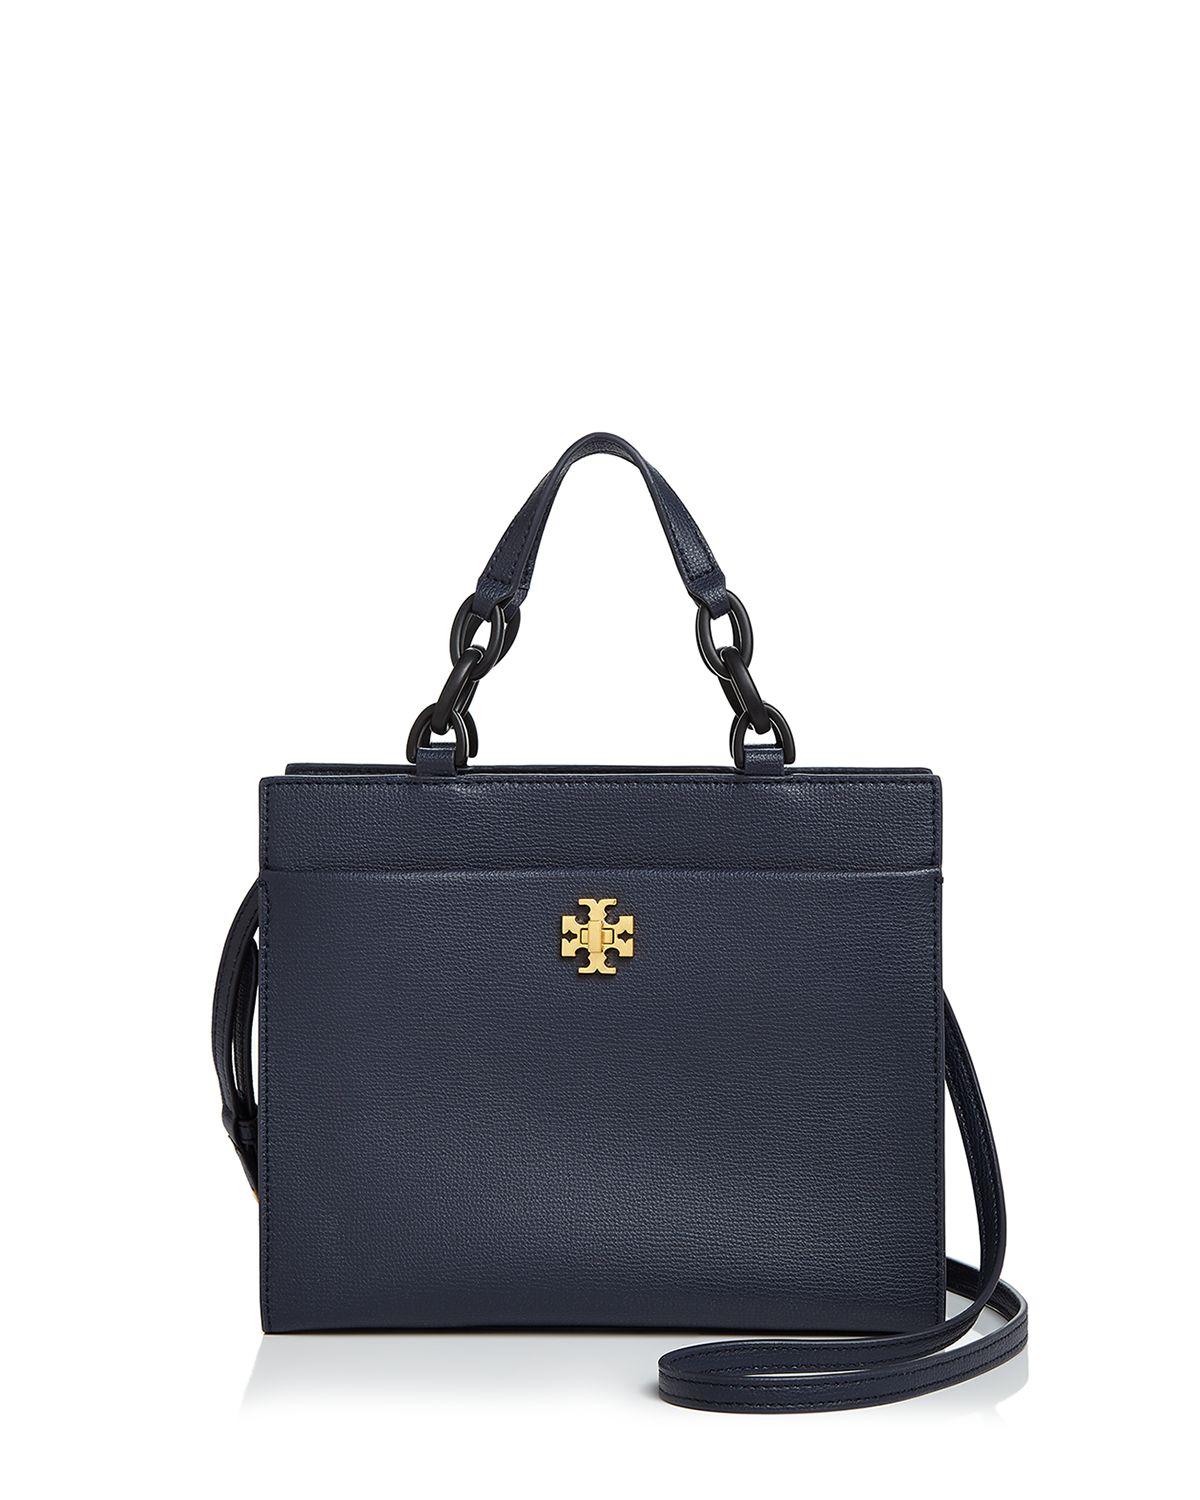 Tory Burch Kira royal navy leather small tote